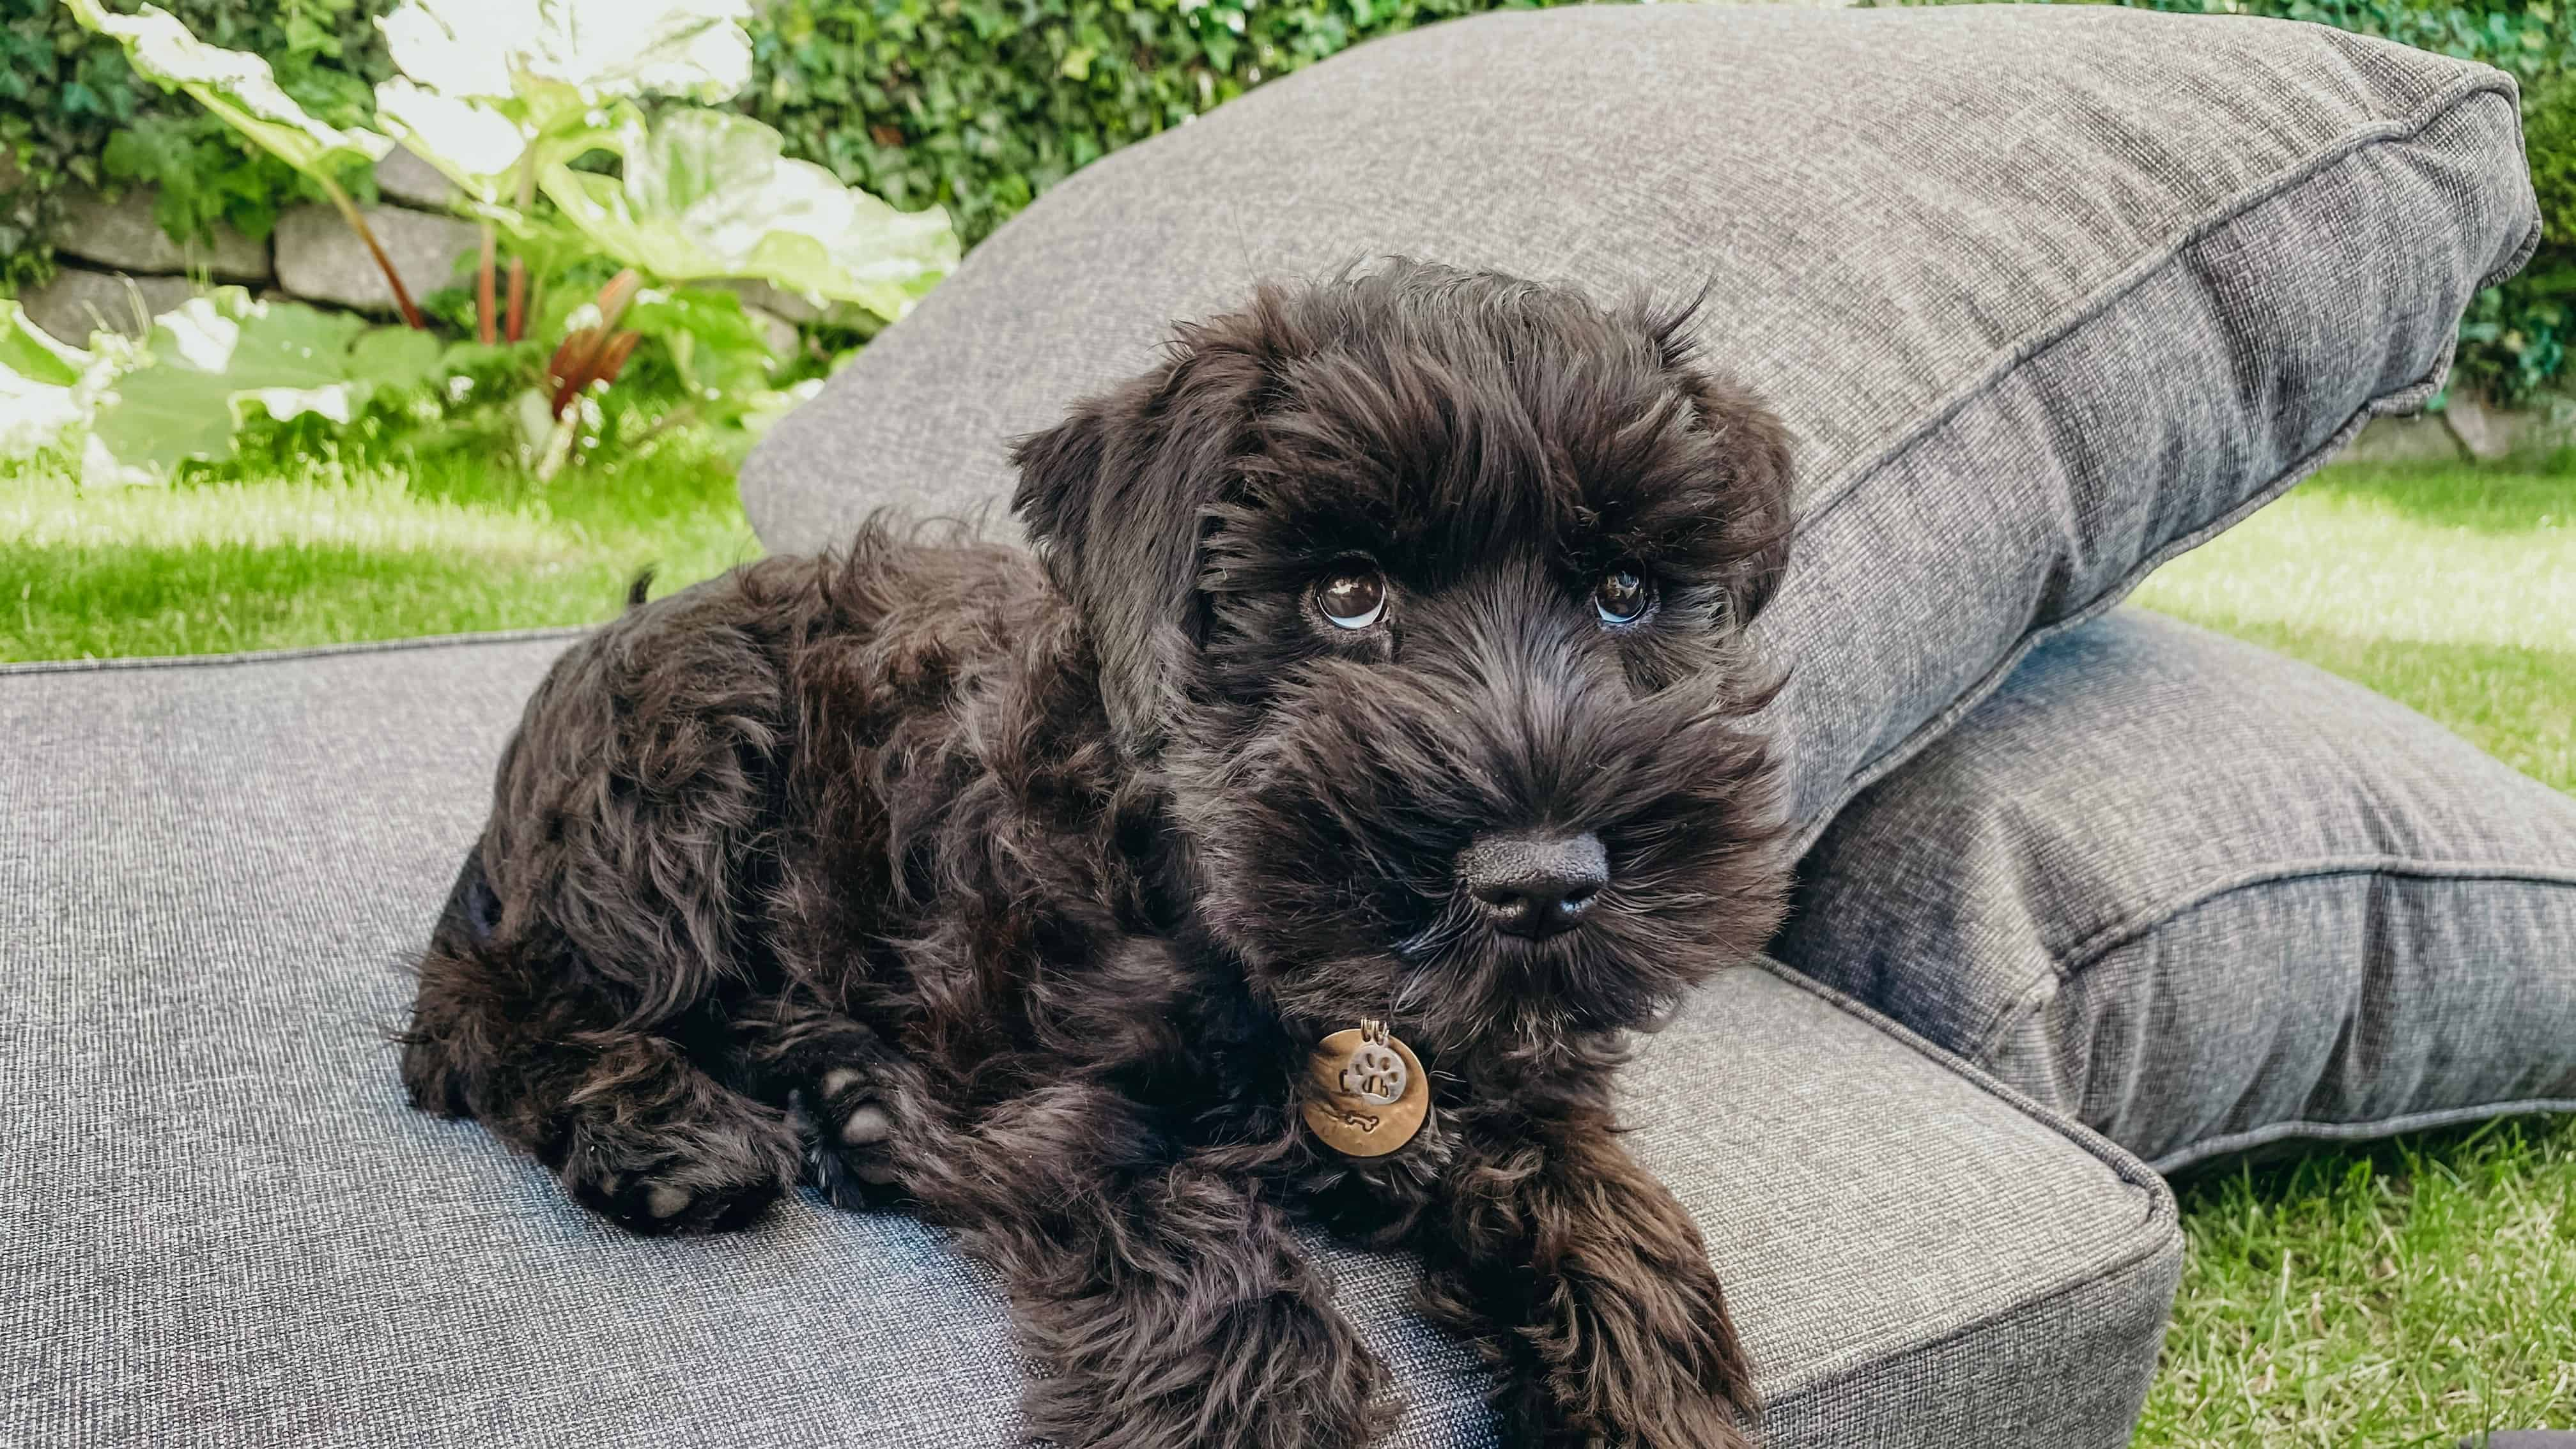 black puppy on cushions on grass